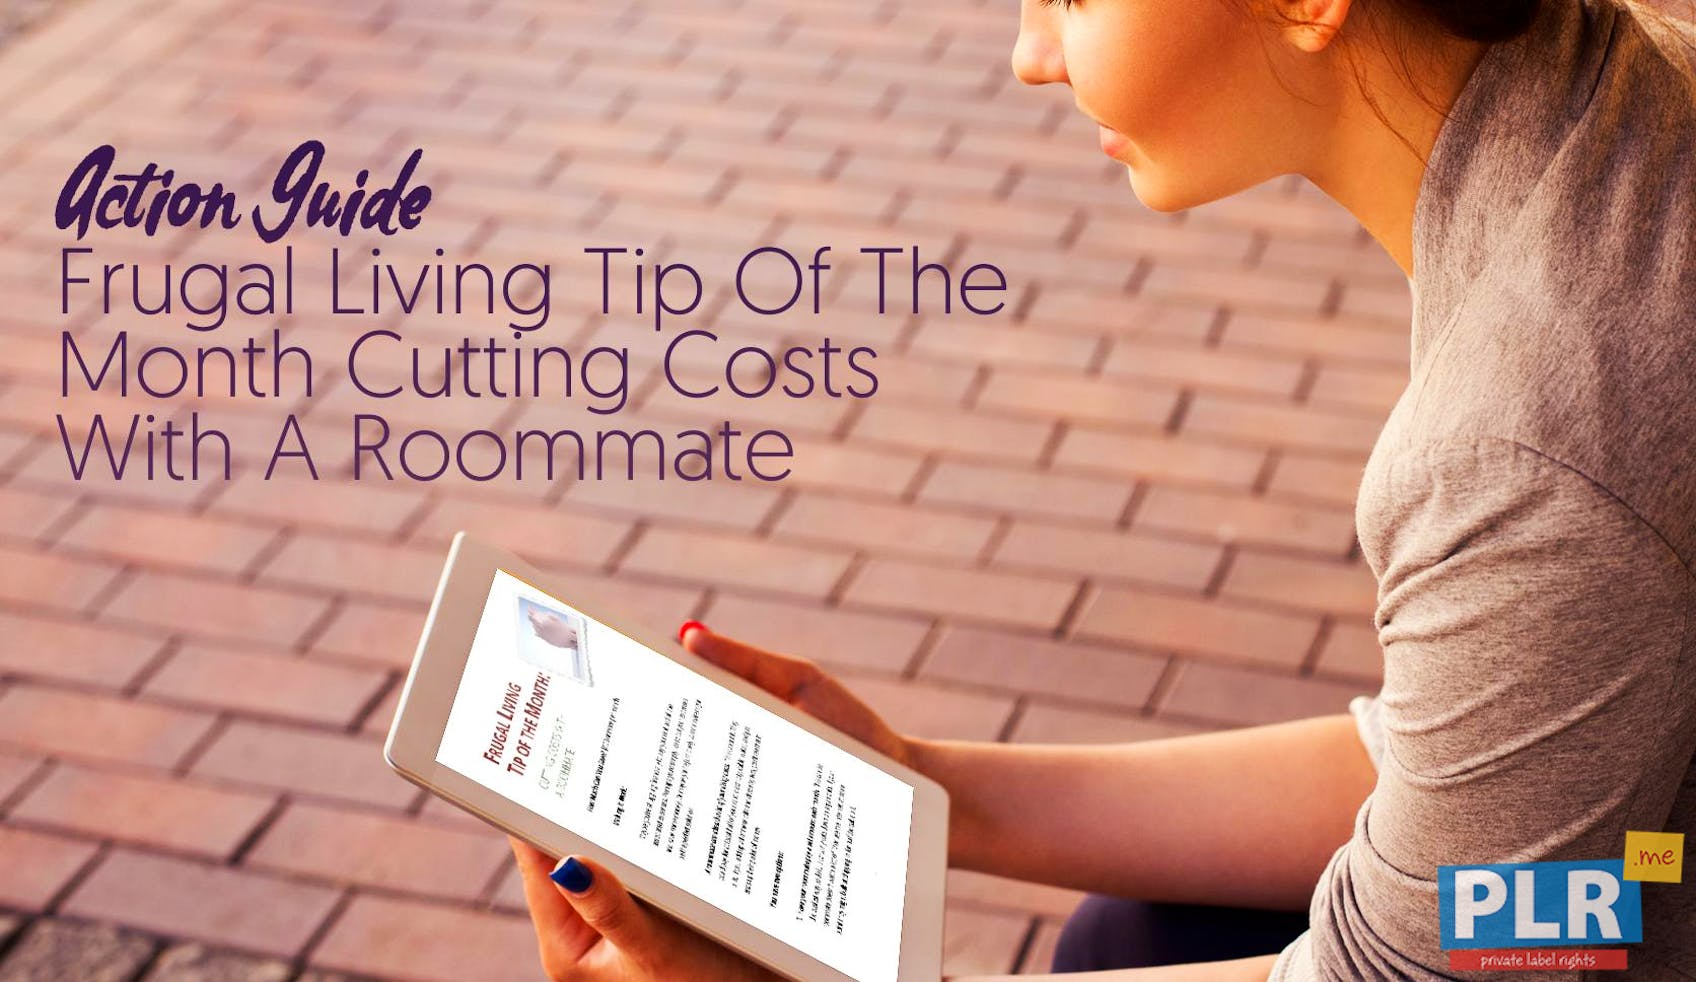 Frugal Living Tip Of The Month Cutting Costs With A Roommate